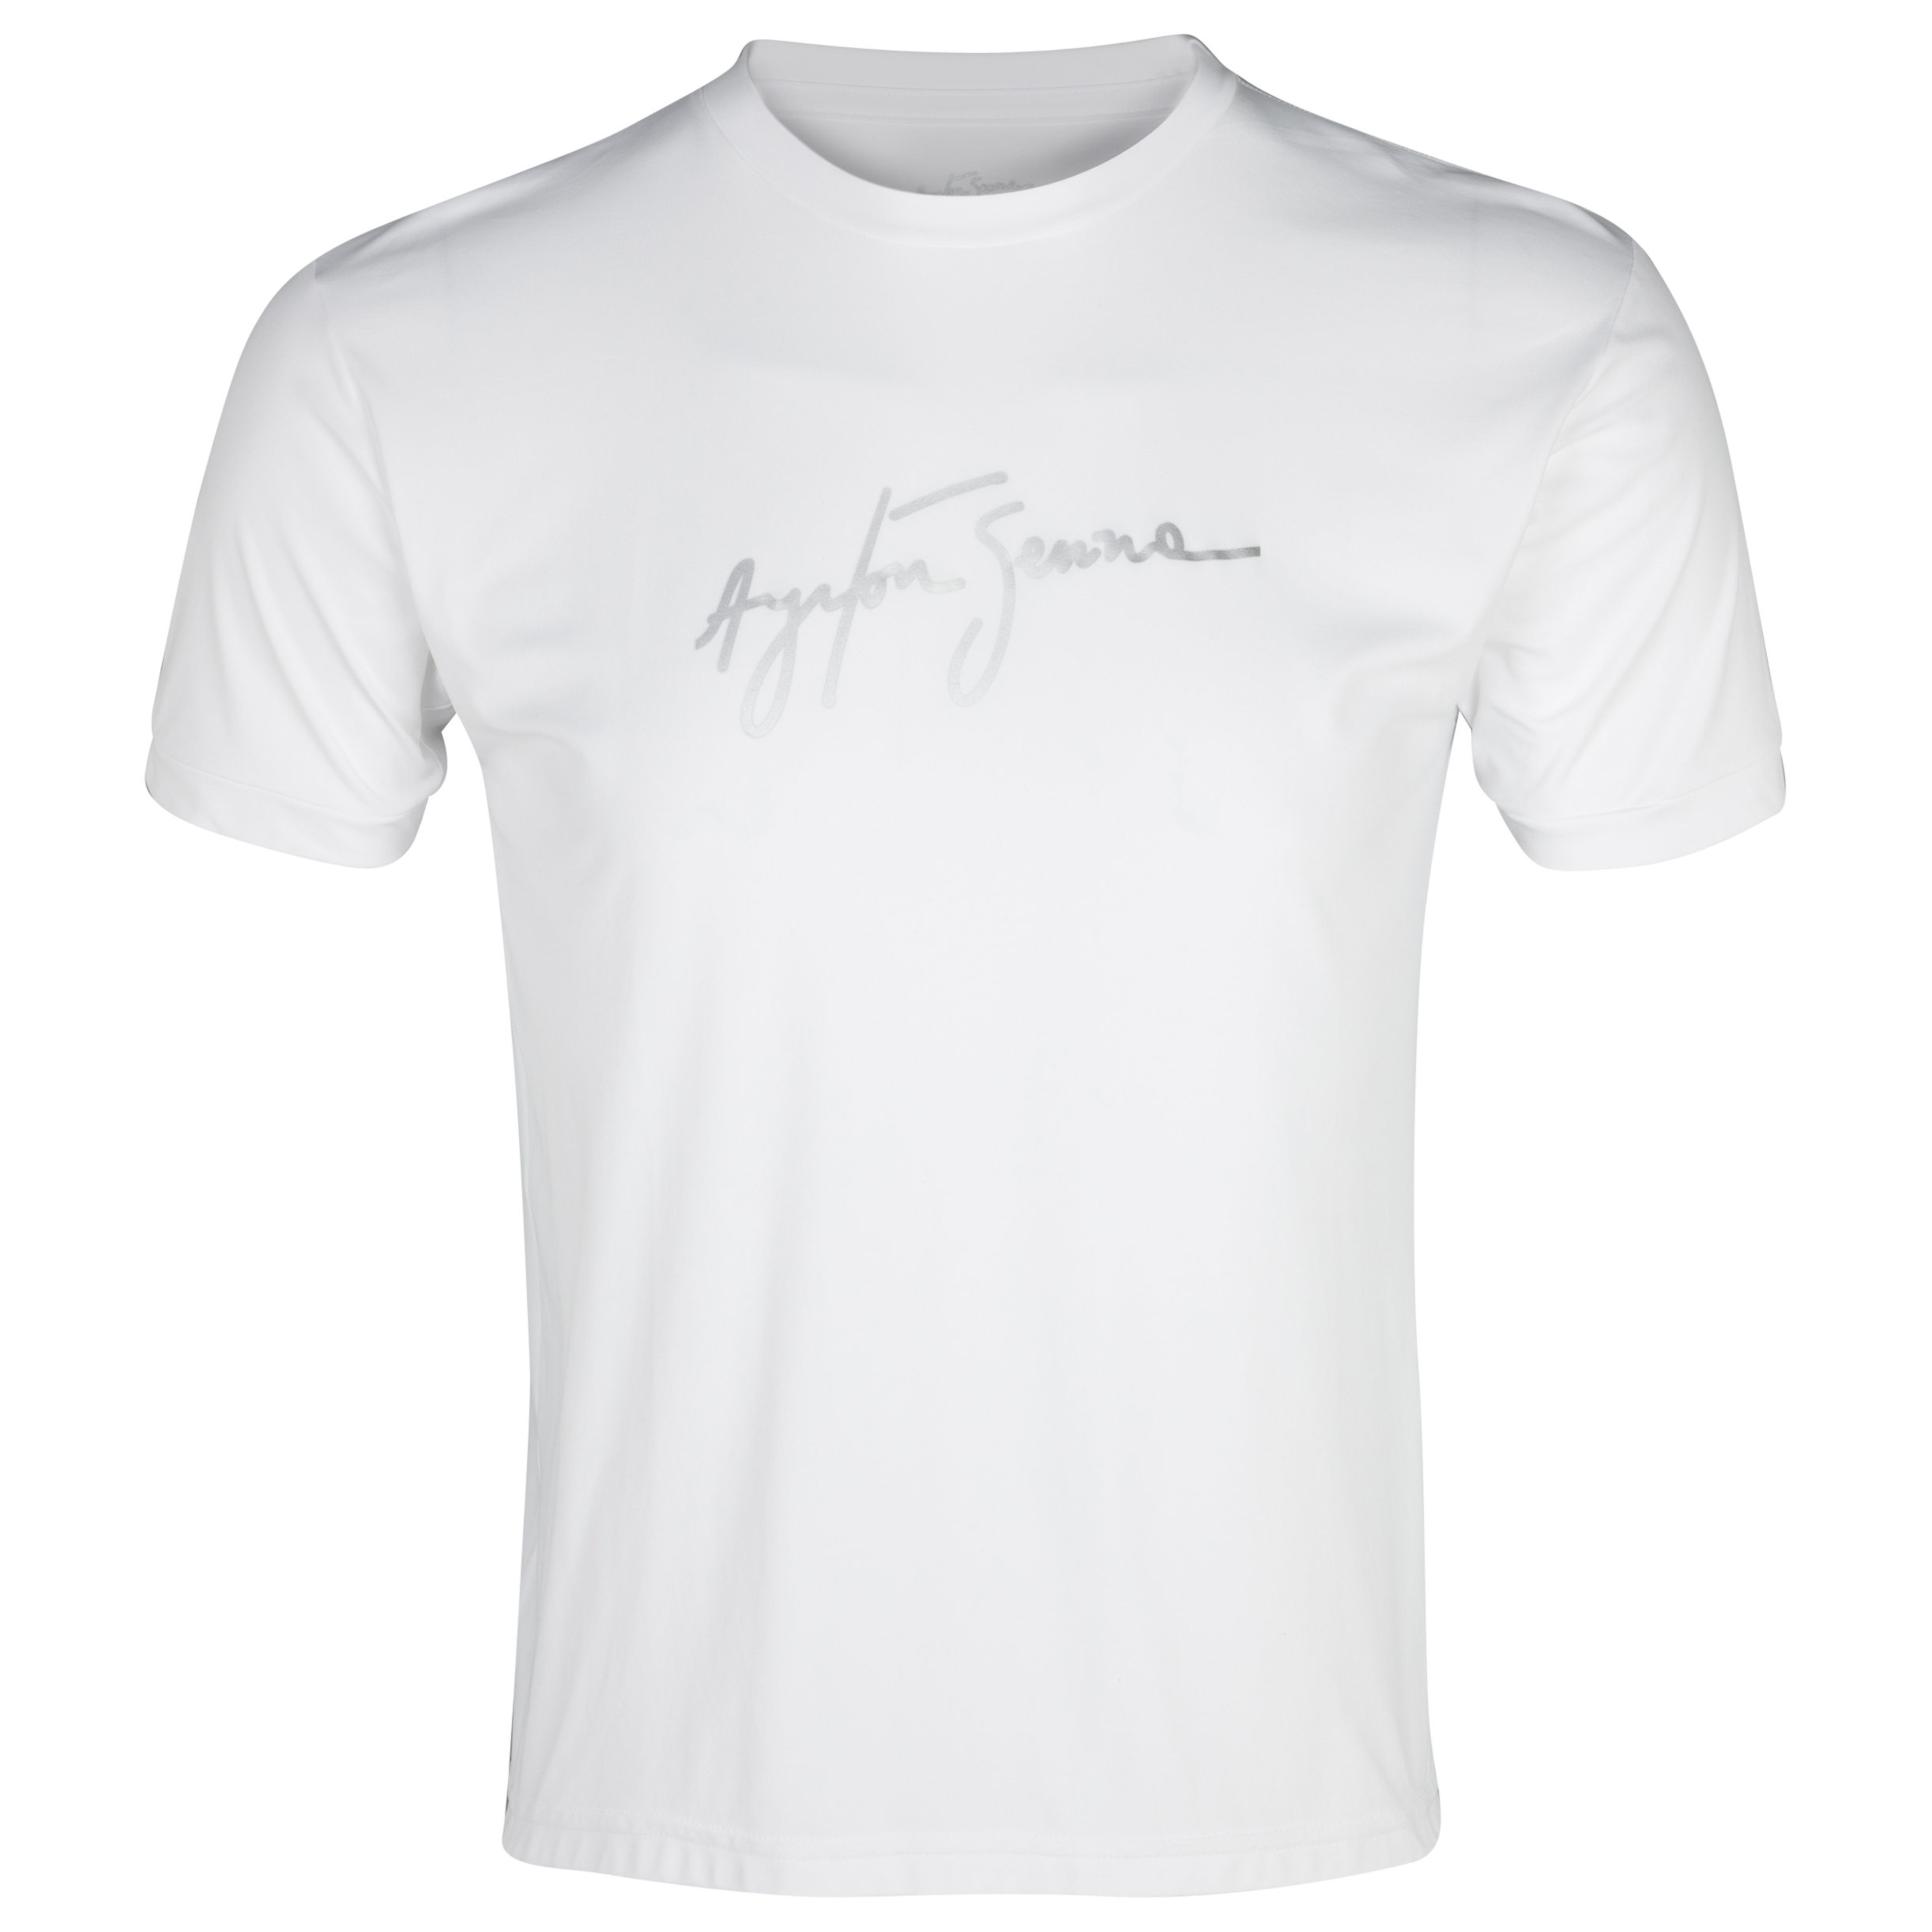 Ayrton Senna Dry Fit T-Shirt - White